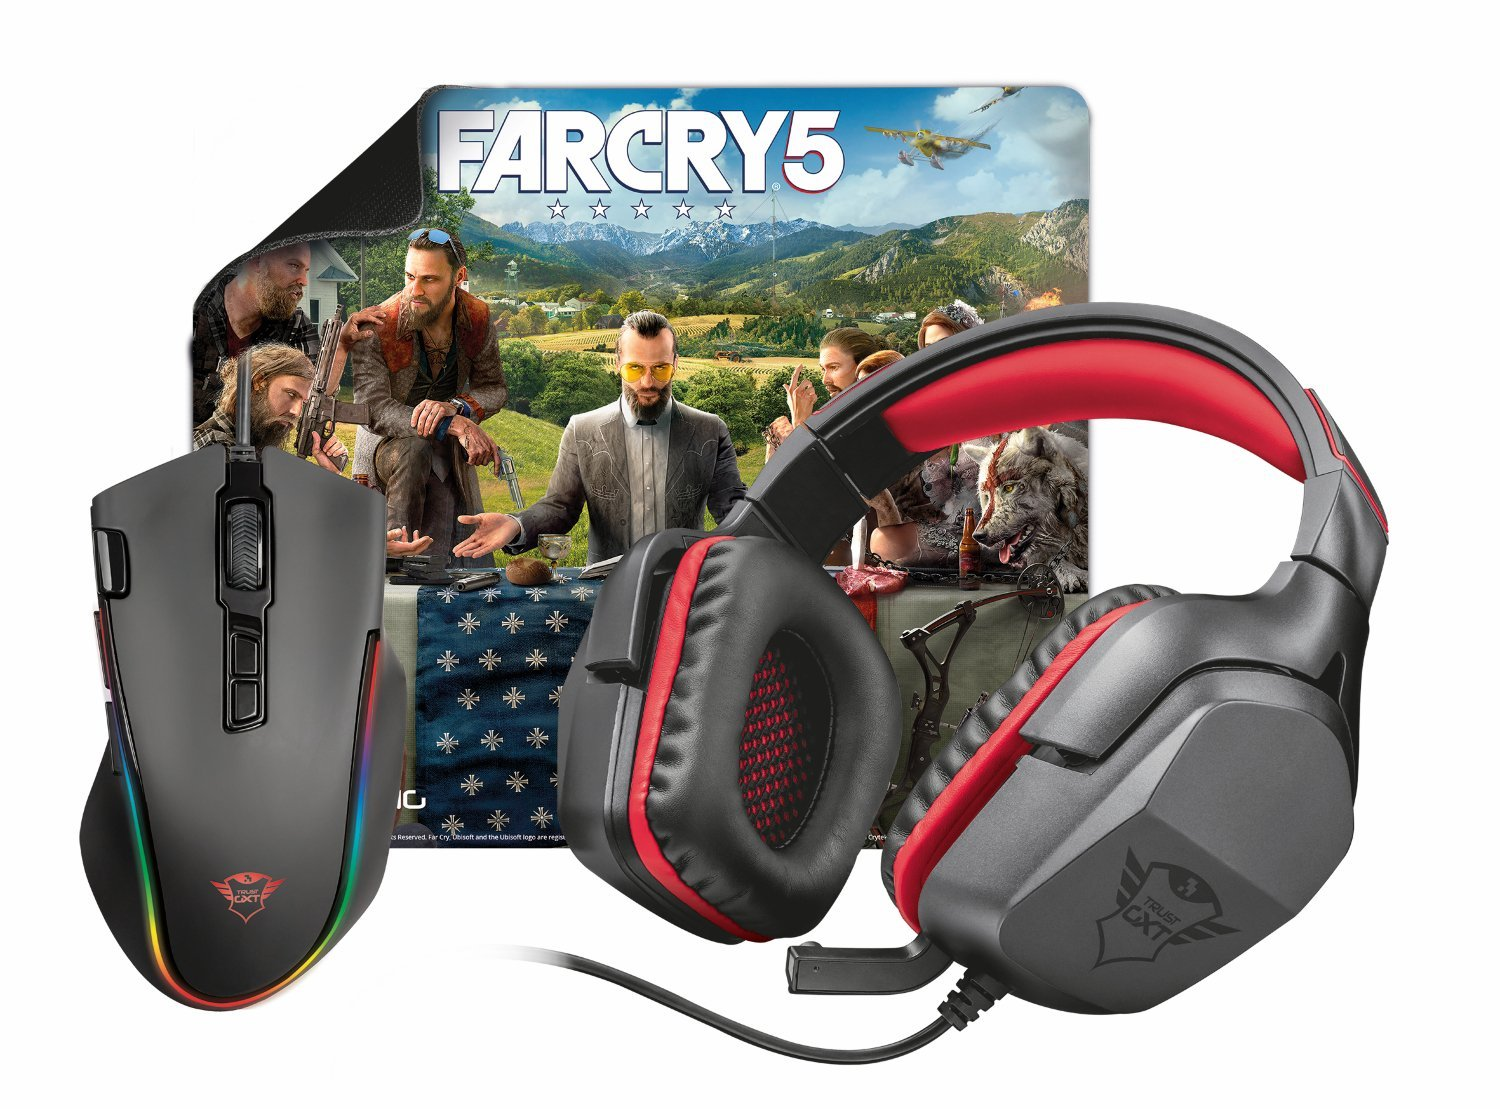 Far Cry Gaming Bundle Labon/Creon - Mouse / Surface / Headset / Far Cry 5